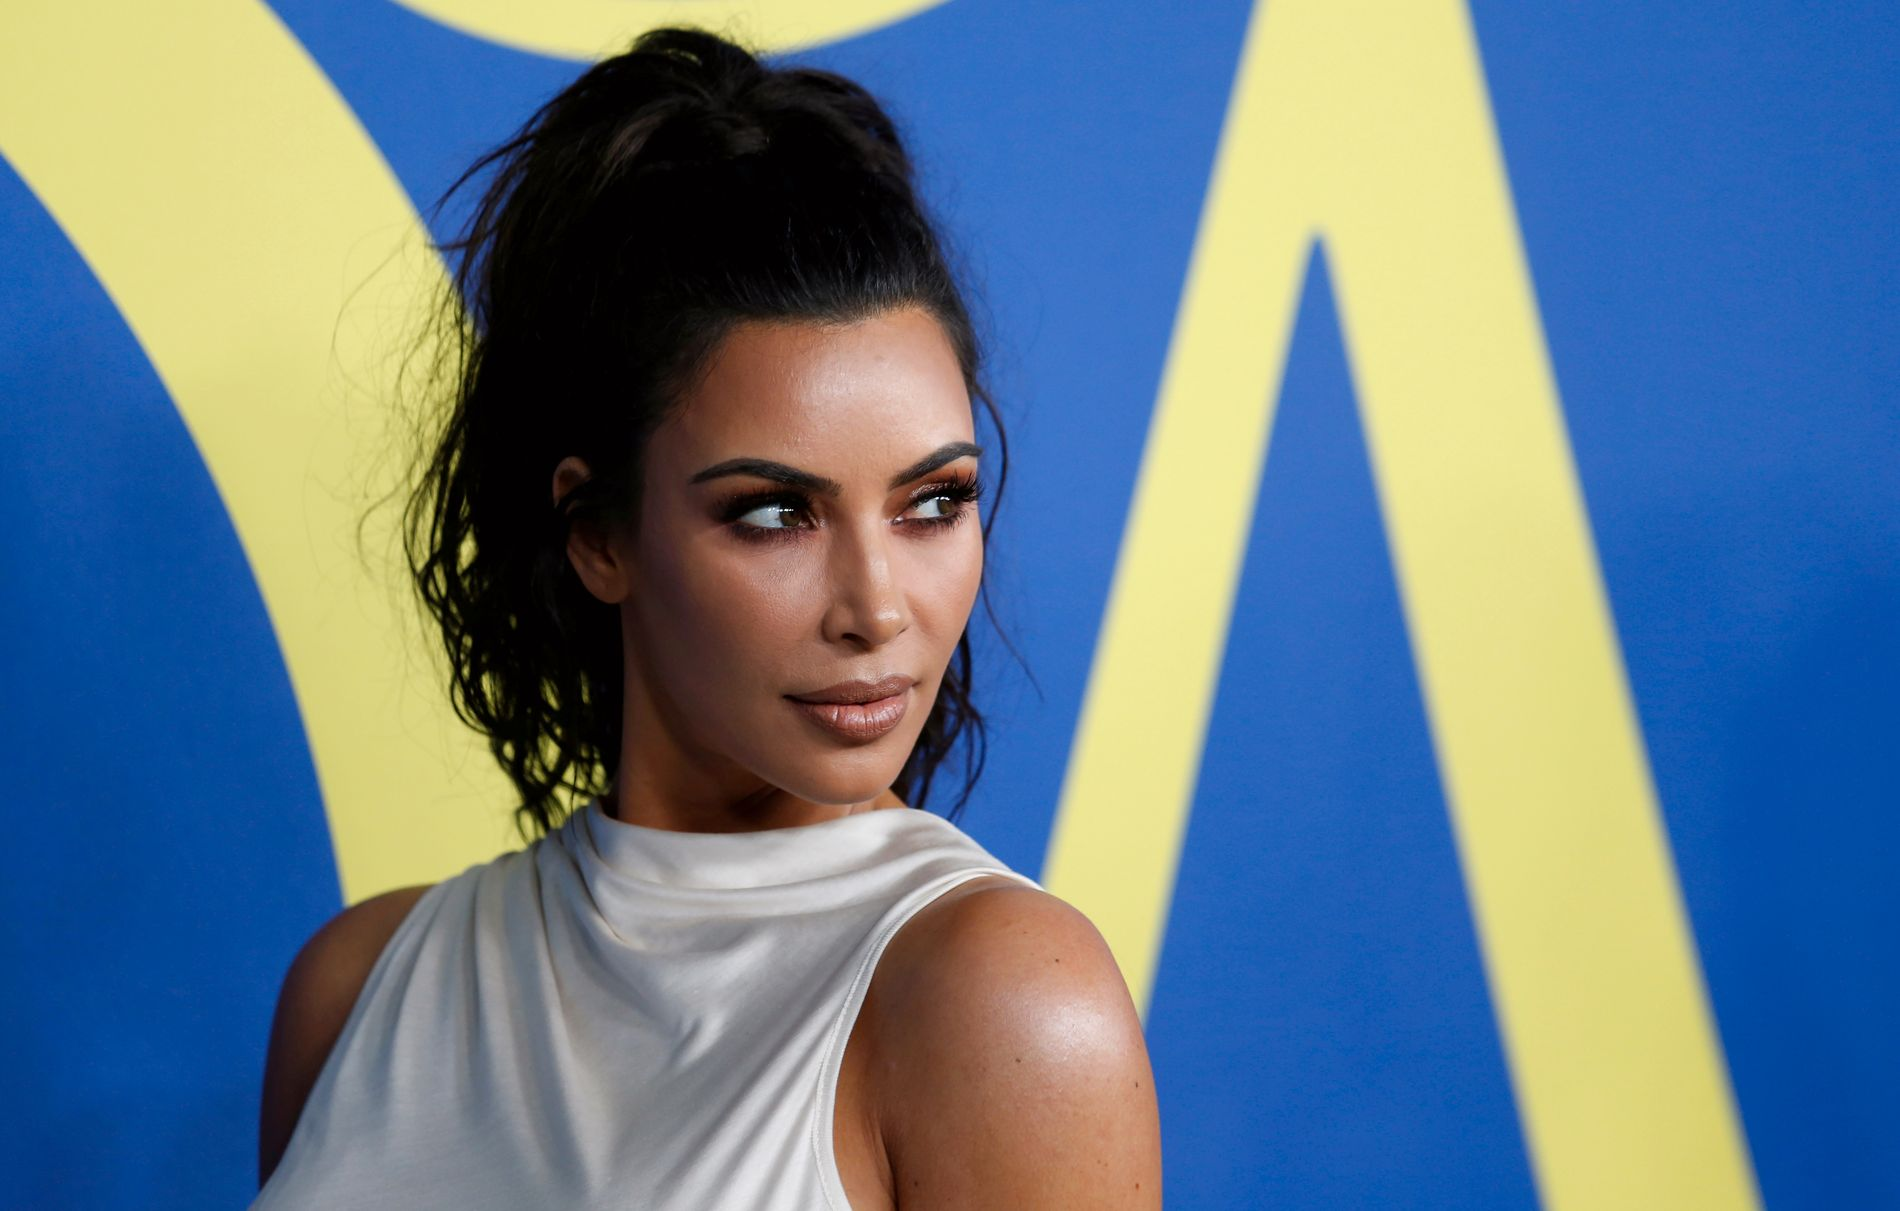 CONFIRMED: Kim Kardashian West is worried about his sister Khloé and tells him about the approaching Kardashians.